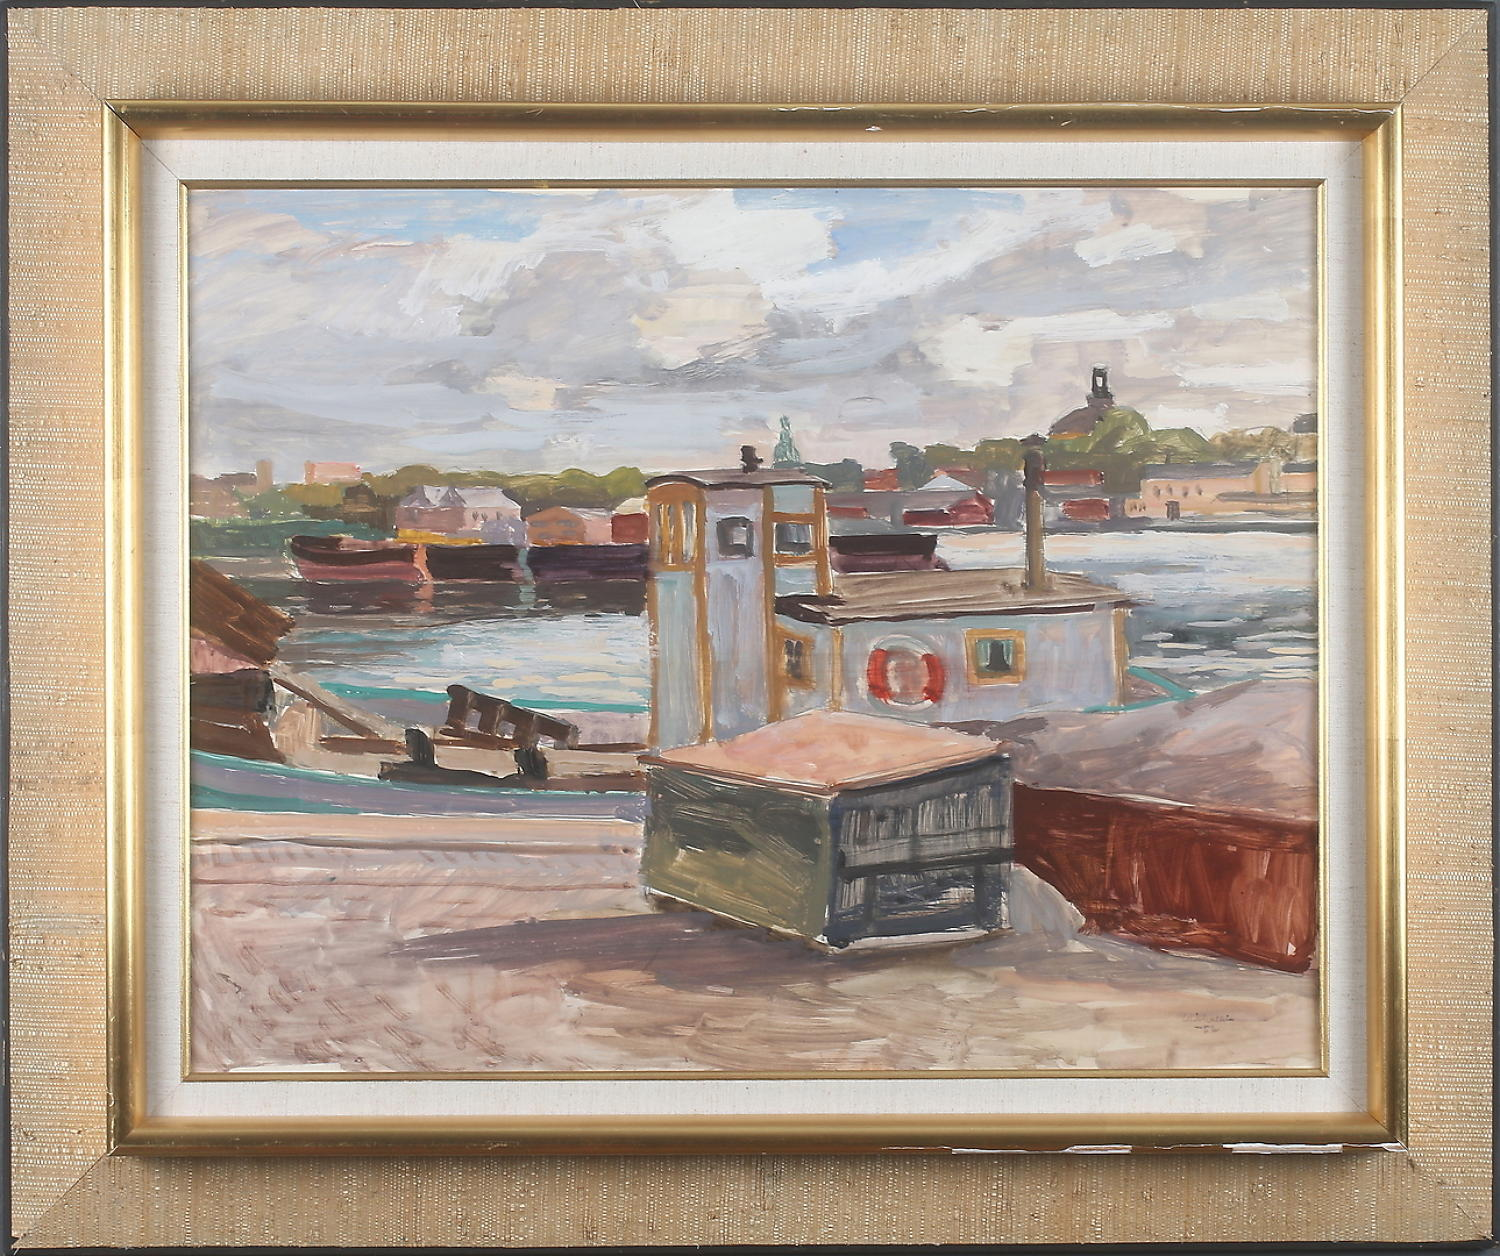 ELLIS WALLIN oil on panel dated '52